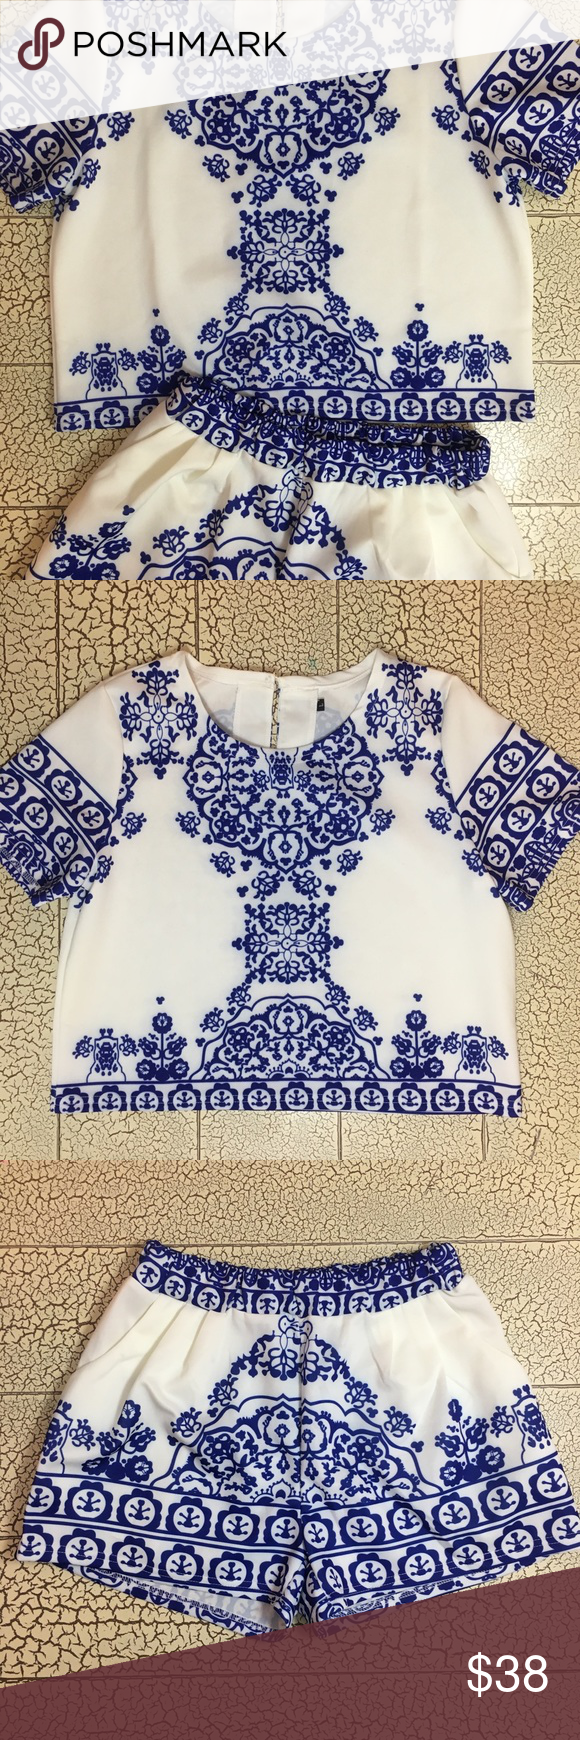 b1b604f7e3326d Blue and white crop top shorts matching set Blue and white porcelain print  crop top with matching shorts set! Boho style with a geometric pattern!